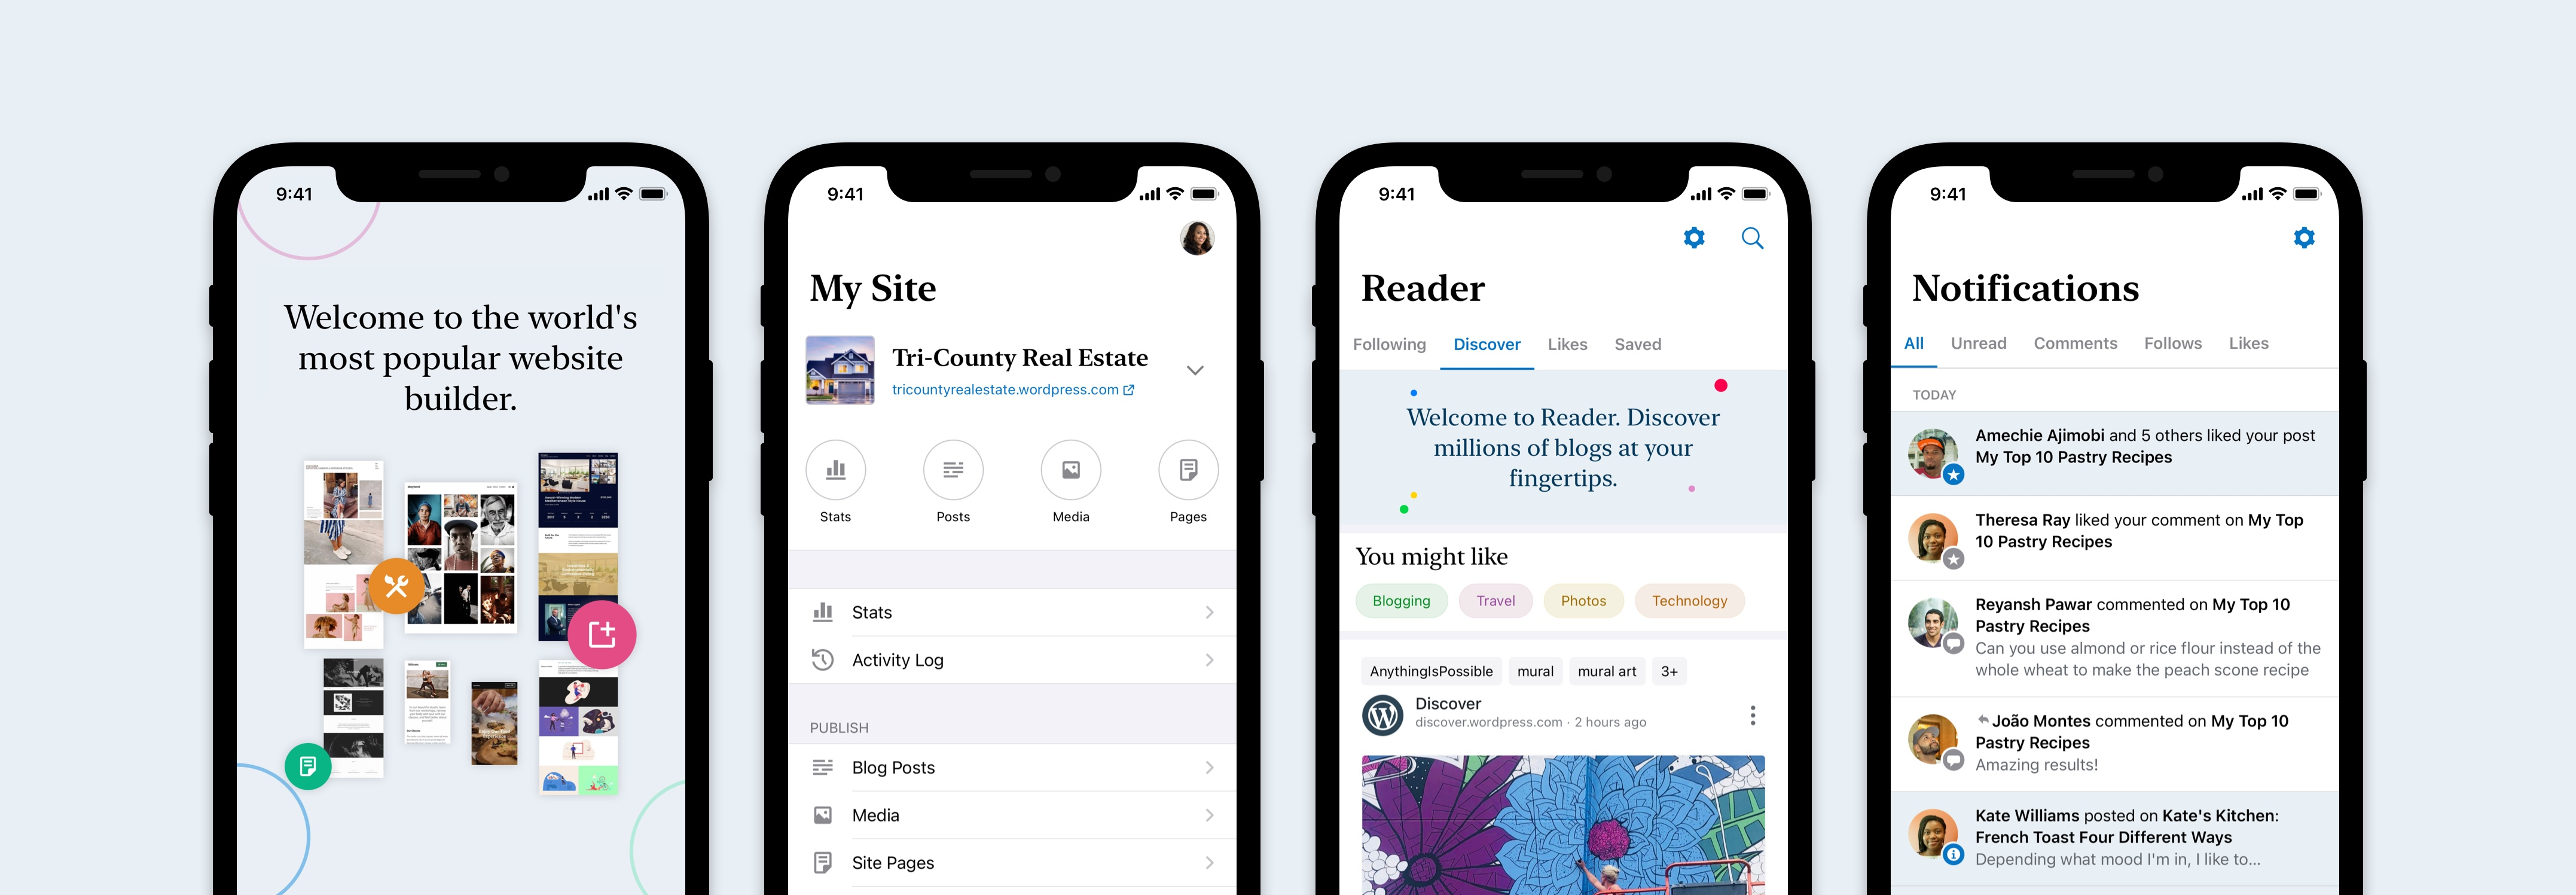 Introducing a new design for the WordPress apps